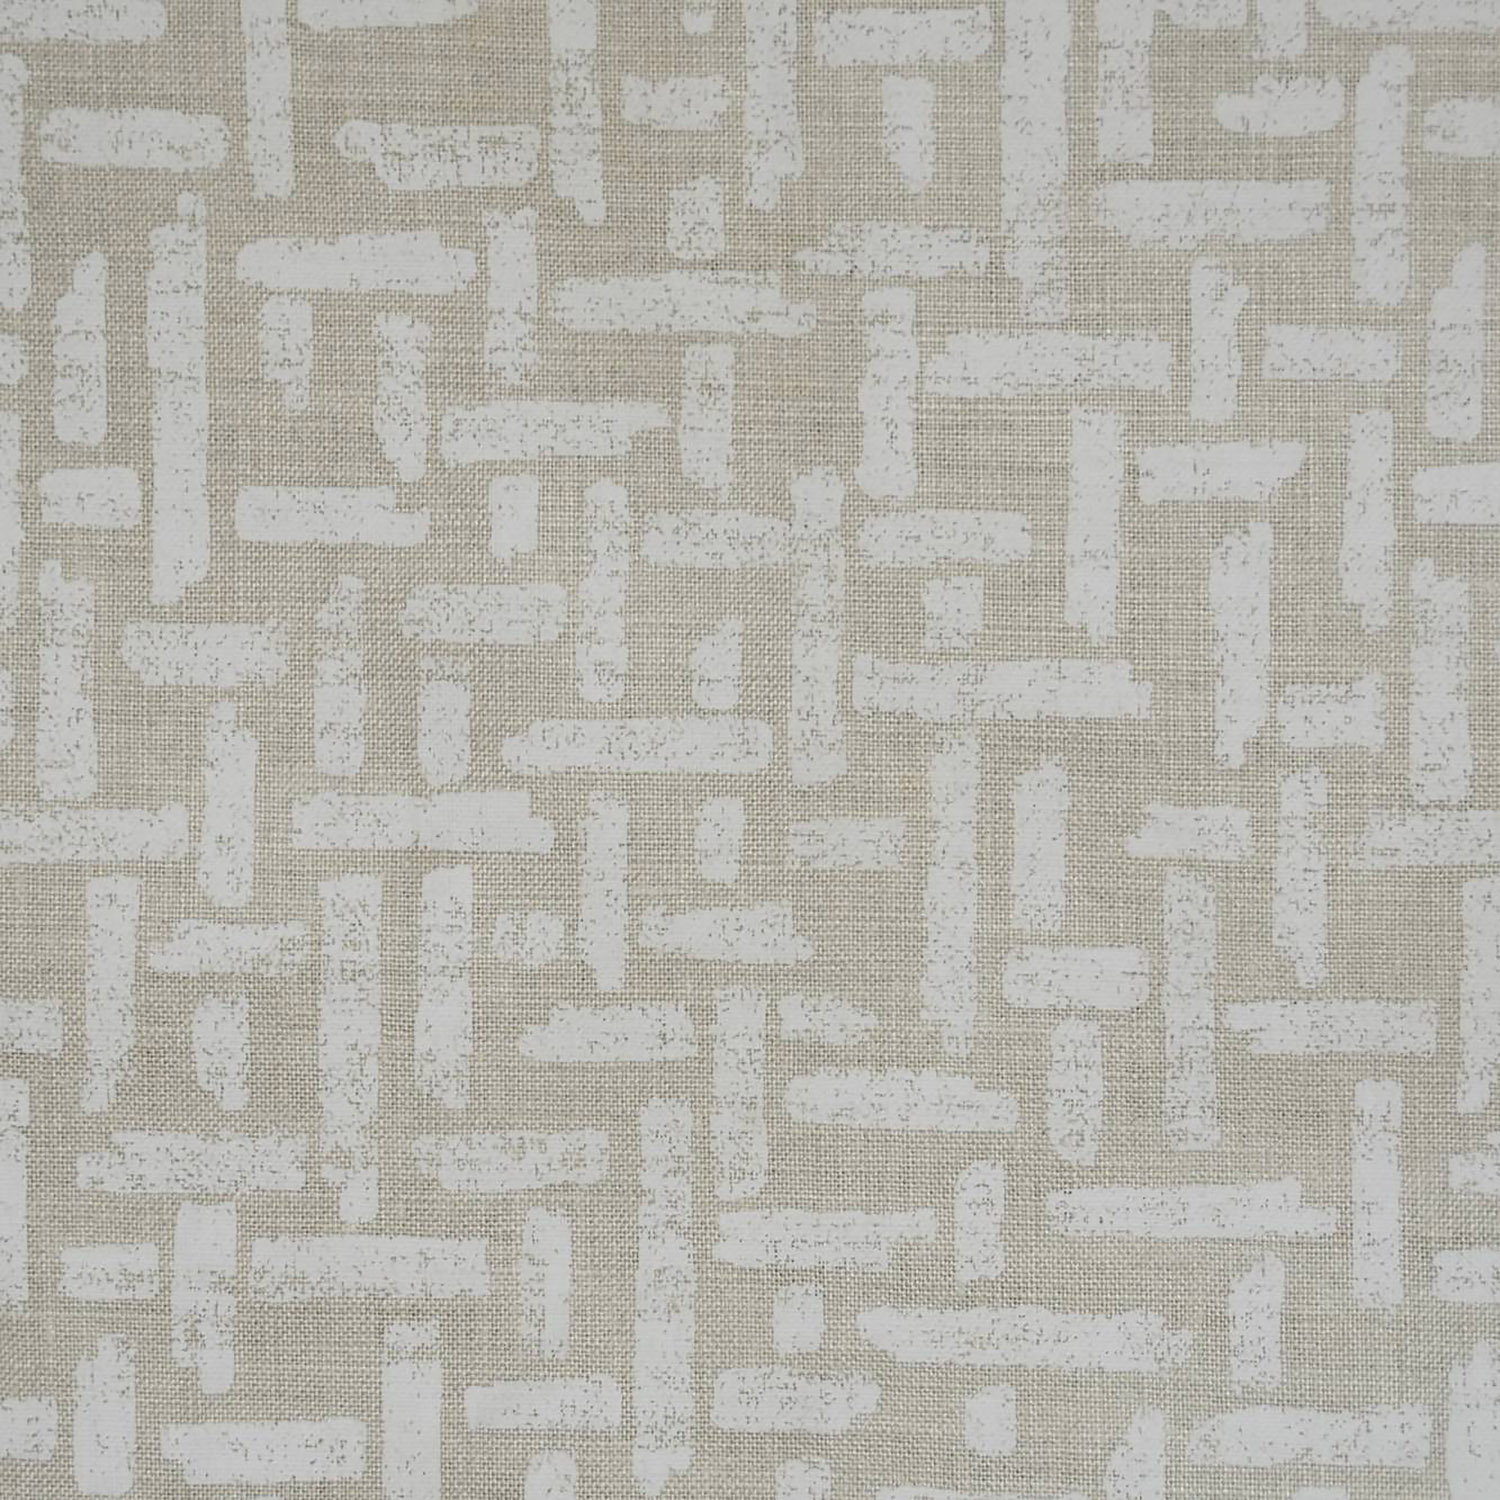 <p><strong>CRISS CROSS</strong>white/natural 8200-06<a href=/collection-4/criss-cross-white-natural-8200-06>More →</a></p>